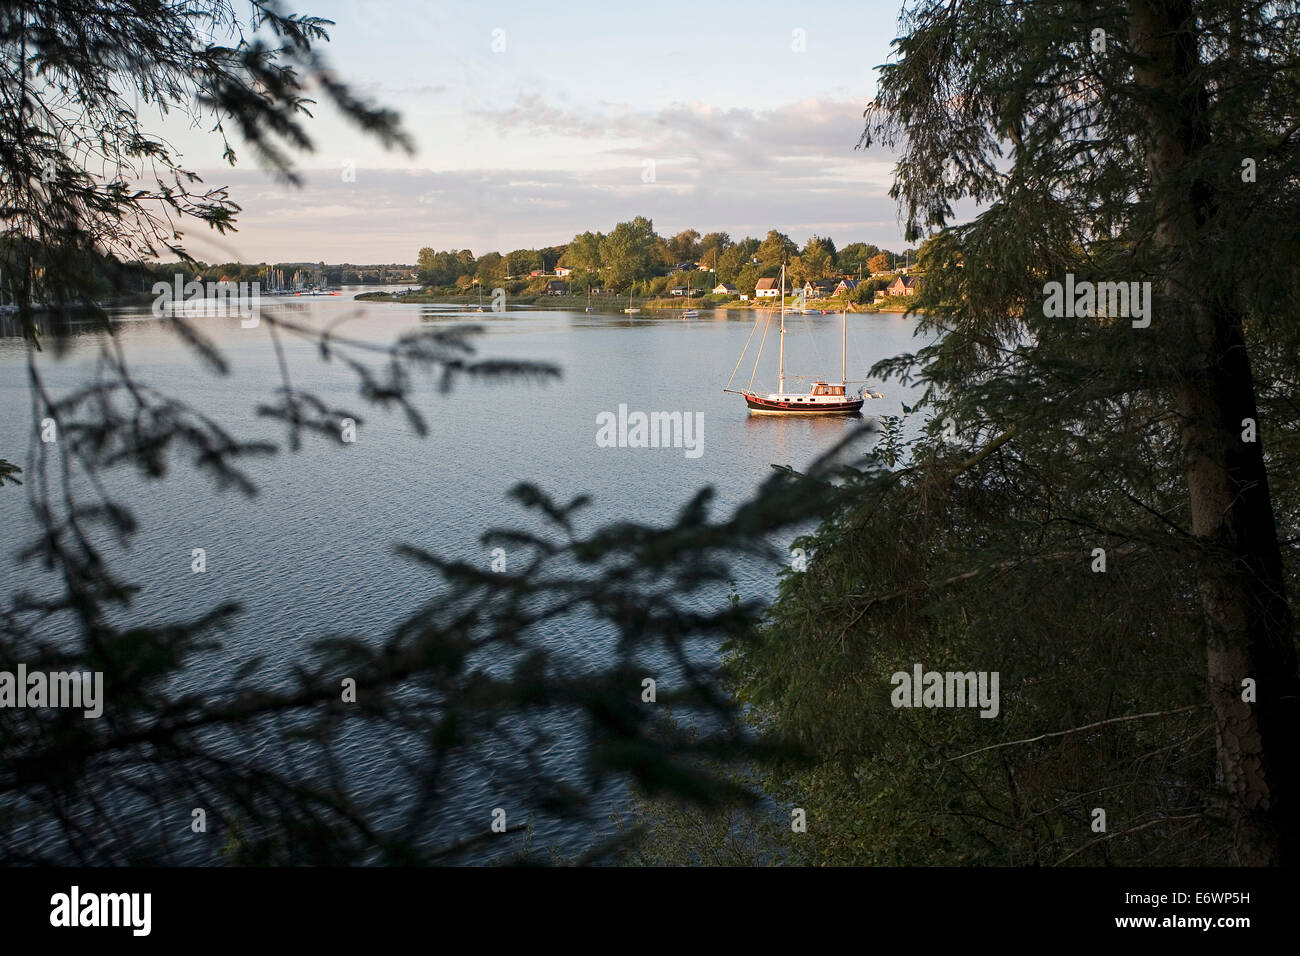 View from the southbank of the Schlei onto the village of Missunde, Schlei, Schleswig-Holstein, Germany, Europe - Stock Image